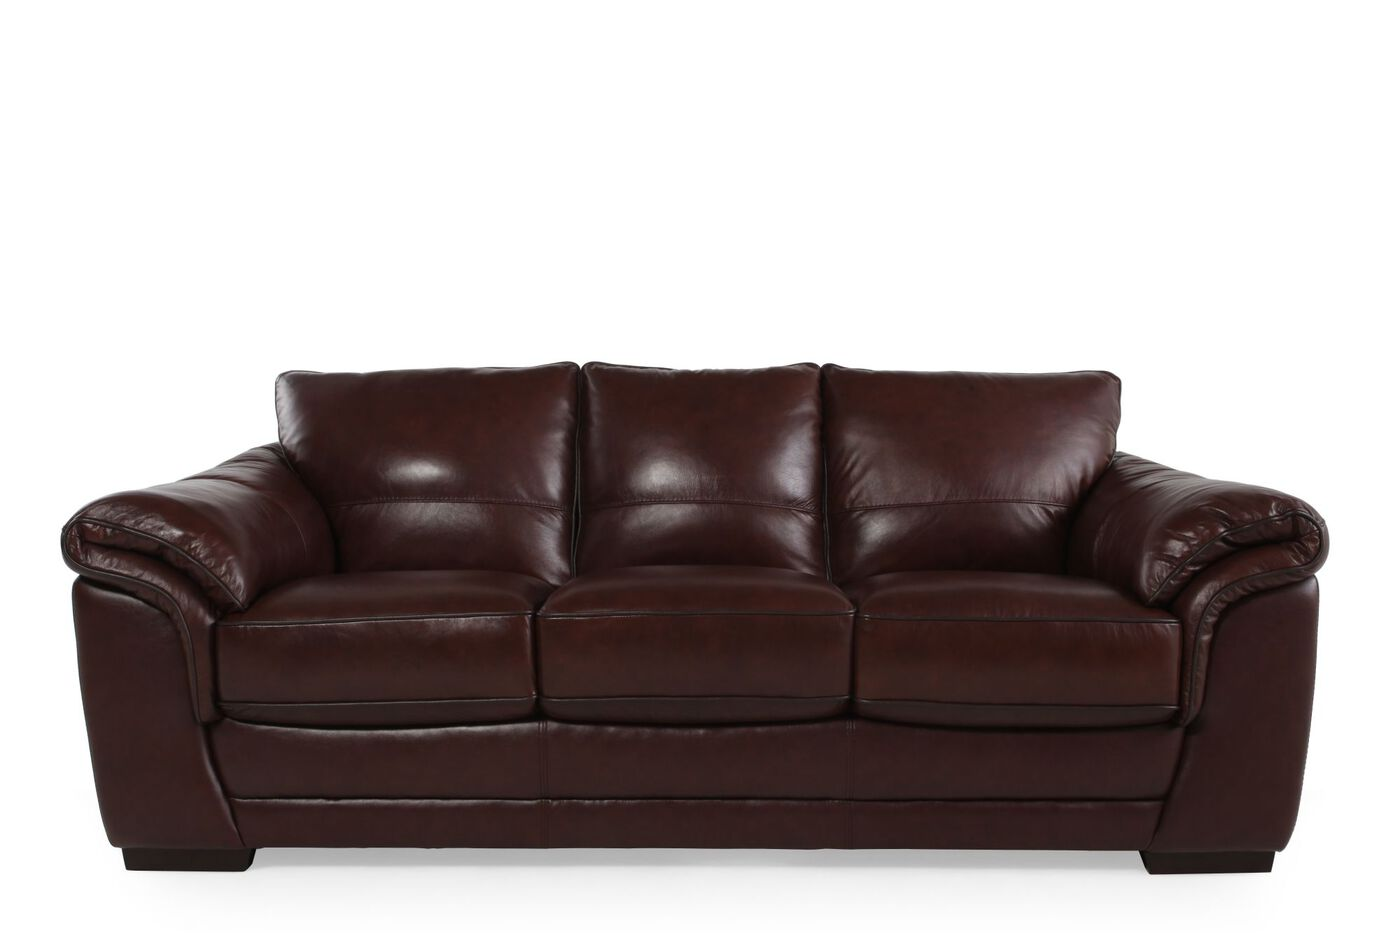 Violino Leather Sofa Leather Sofa Company - TheSofa